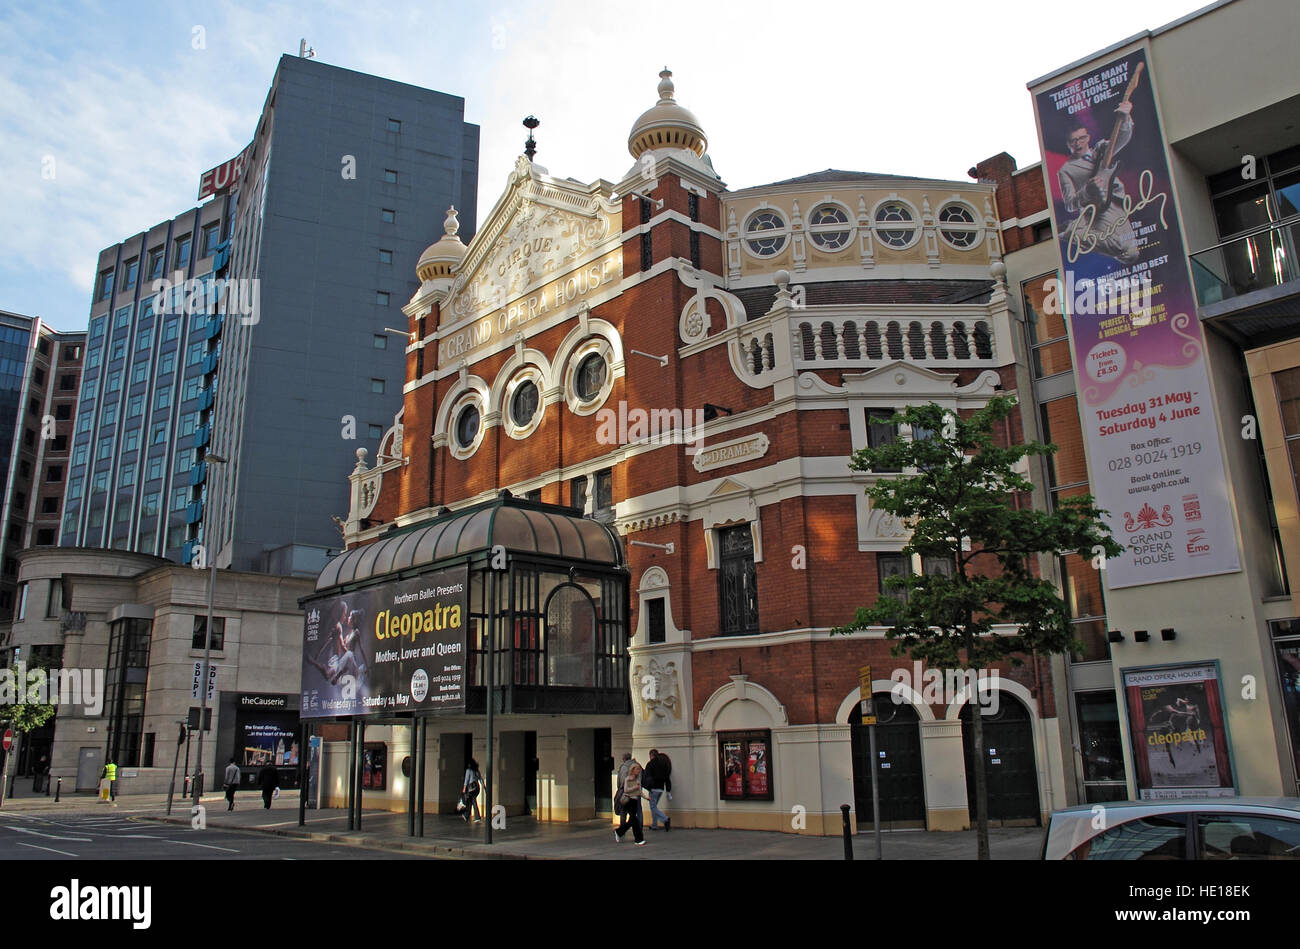 Street,Northern,Ireland,UK,Northern Ireland,Belfast,Grand Opera House,Grand,Opera,House,Frank Matcham,theatre architecture,theatre,architecture,BT2 7HR,BT2,Great Victoria St,Great,Victoria,Sreet,Cirque,Circus,Opera House,city,centre,city centre,GoTonySmith,@HotpixUK,Tony,Smith,UK,GB,Great,Britain,United,Kingdom,Irish,British,Ireland,problem,with,problem with,issue with,NI,Northern,Northern Ireland,Belfast,City,Centre,Actor,Actors,play,theatre,Art,Artists,the,troubles,The Troubles,Peace,Beal,feirste,social,tour,tourism,tourists,urban,six,counties,6,backdrop,county,Antrim,Buy Pictures of,Buy Images Of,Images of,Stock Images,Tony Smith,United Kingdom,Great Britain,British Isles,Grand,Opera,House,Trust